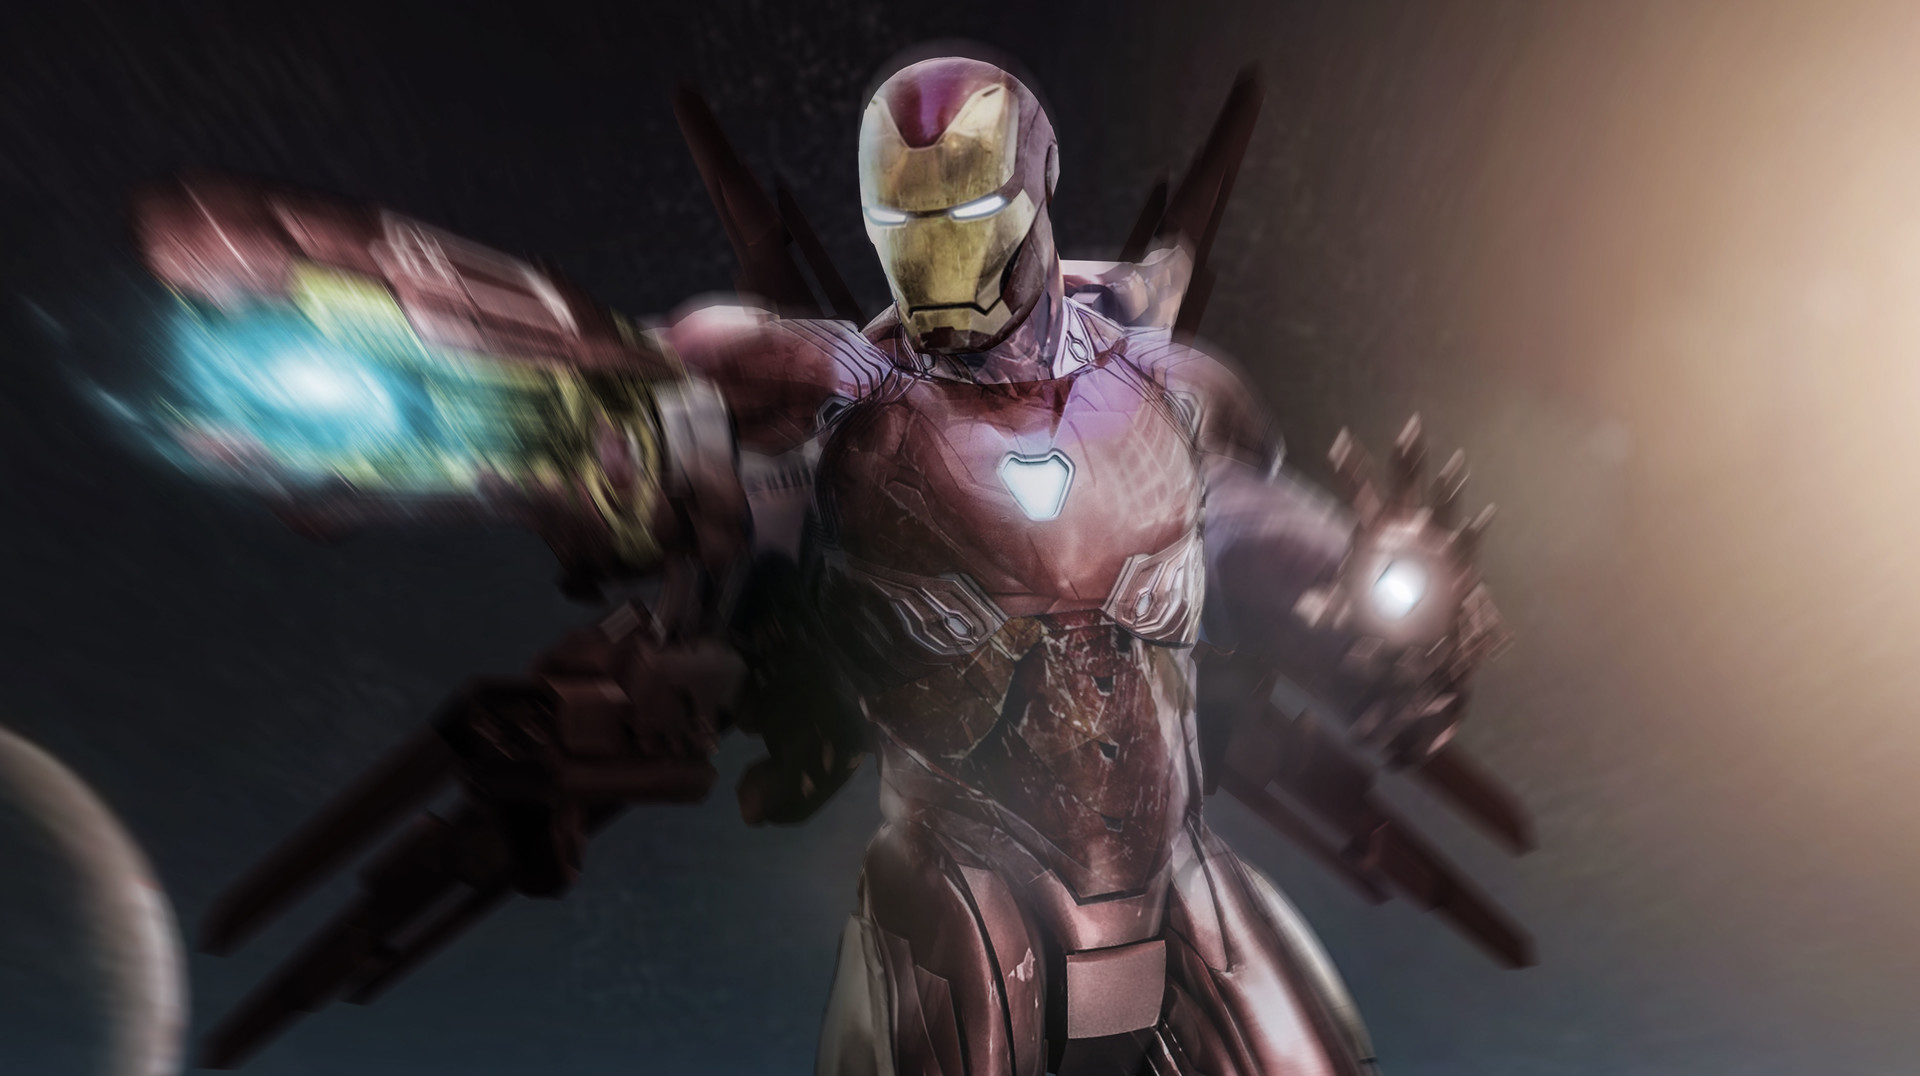 1920x1080 Iron Man Avengers Infinity War Suit Laptop Full Hd 1080p